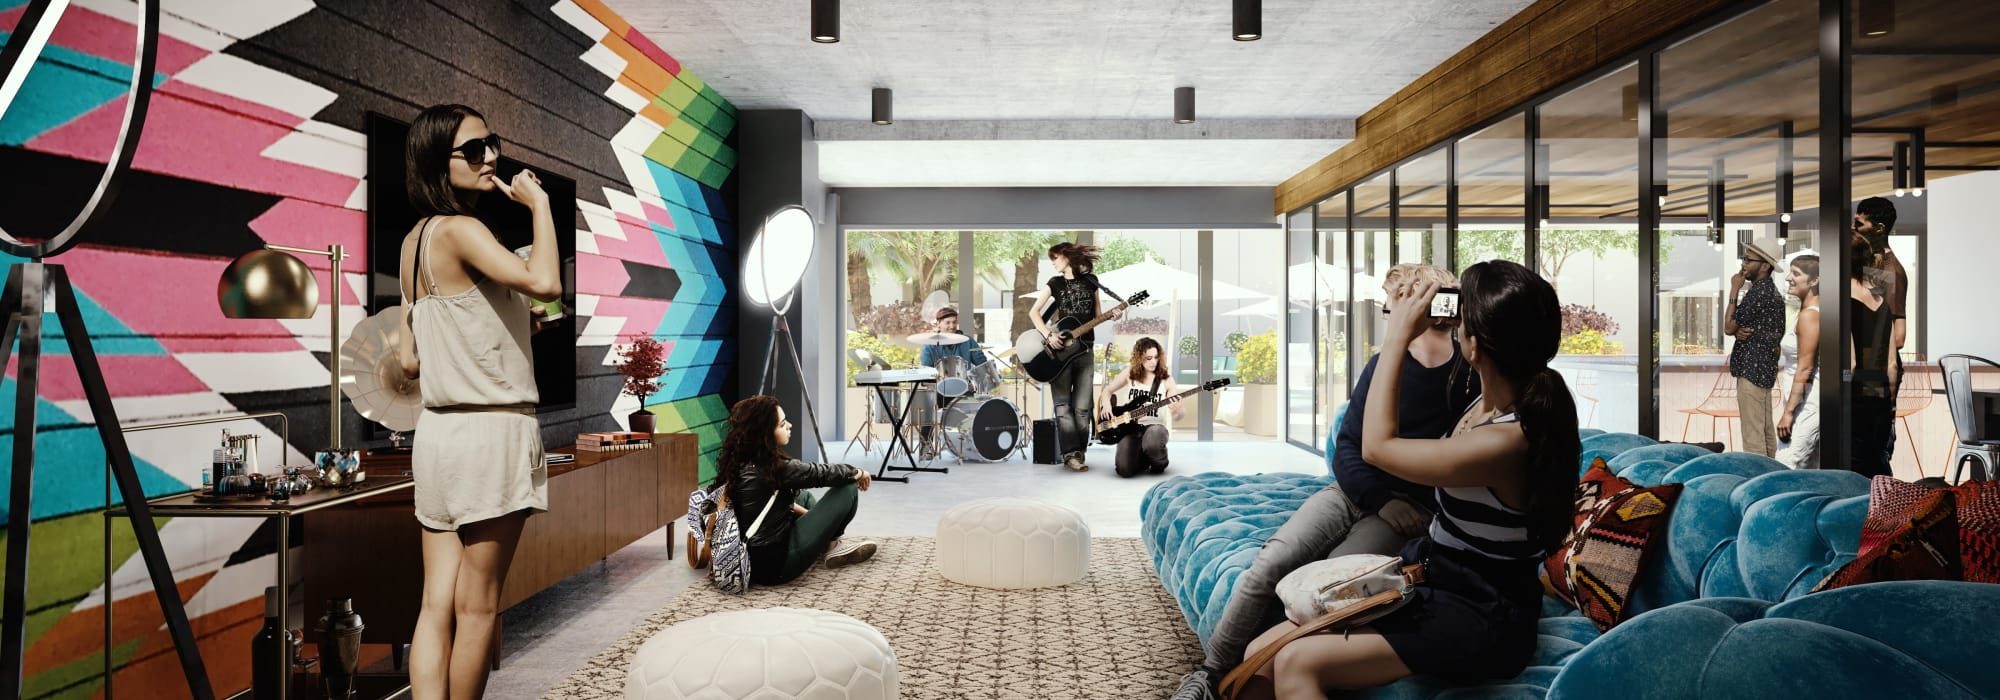 Rendering of the music lounge at The Local Apartments in Tempe, Arizona